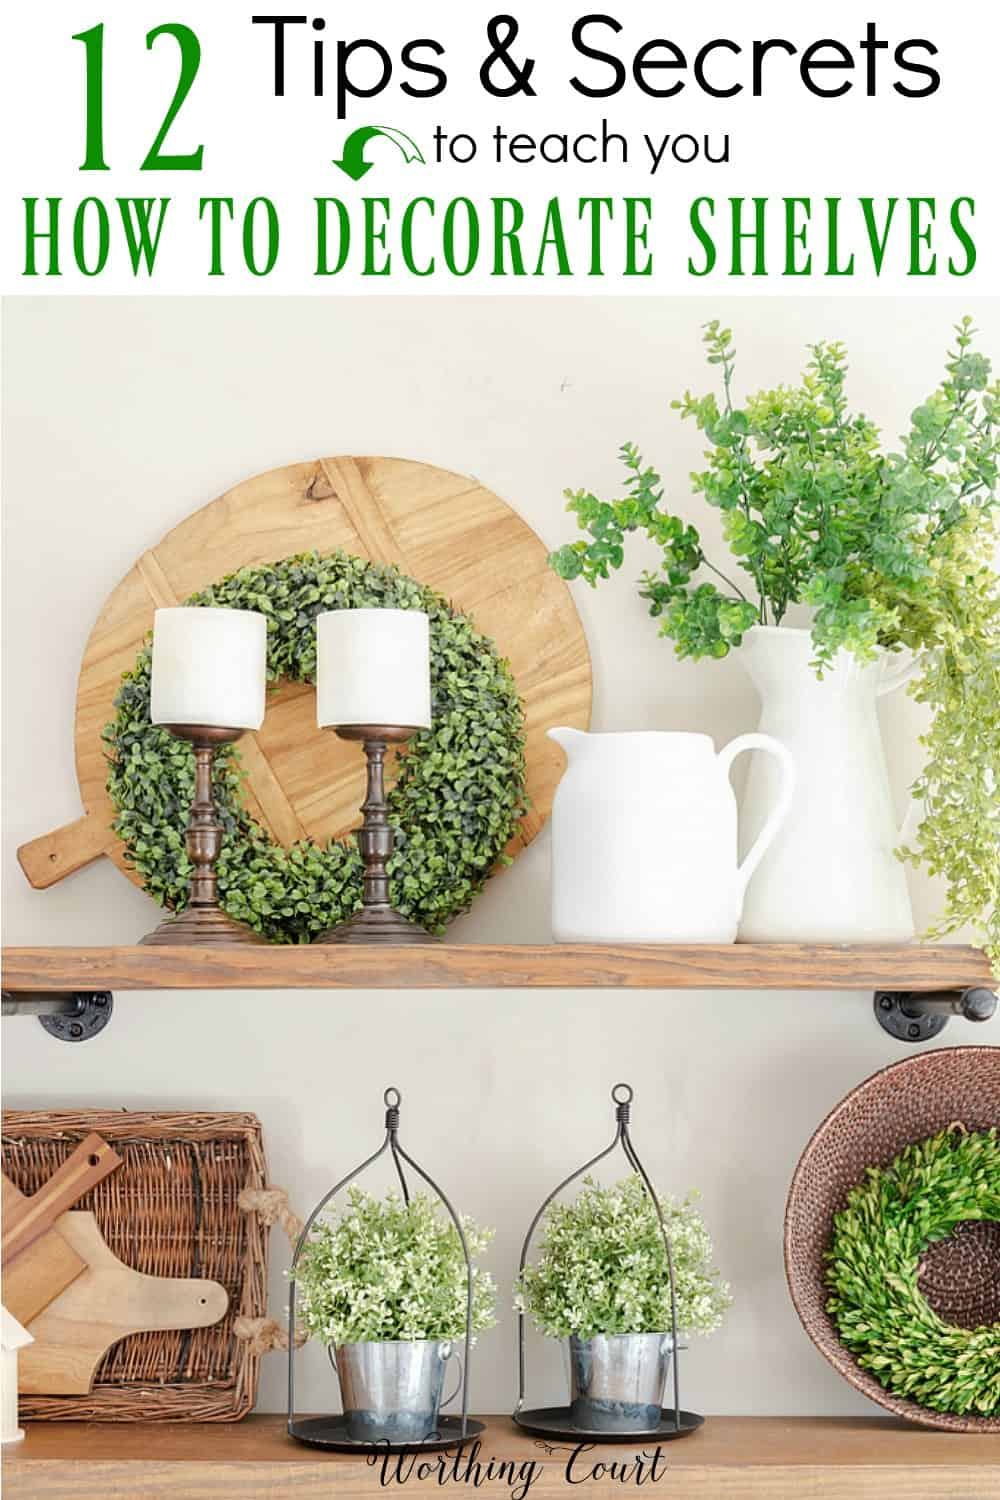 12 tips and secrets how to decorate shelves like a pro graphic.